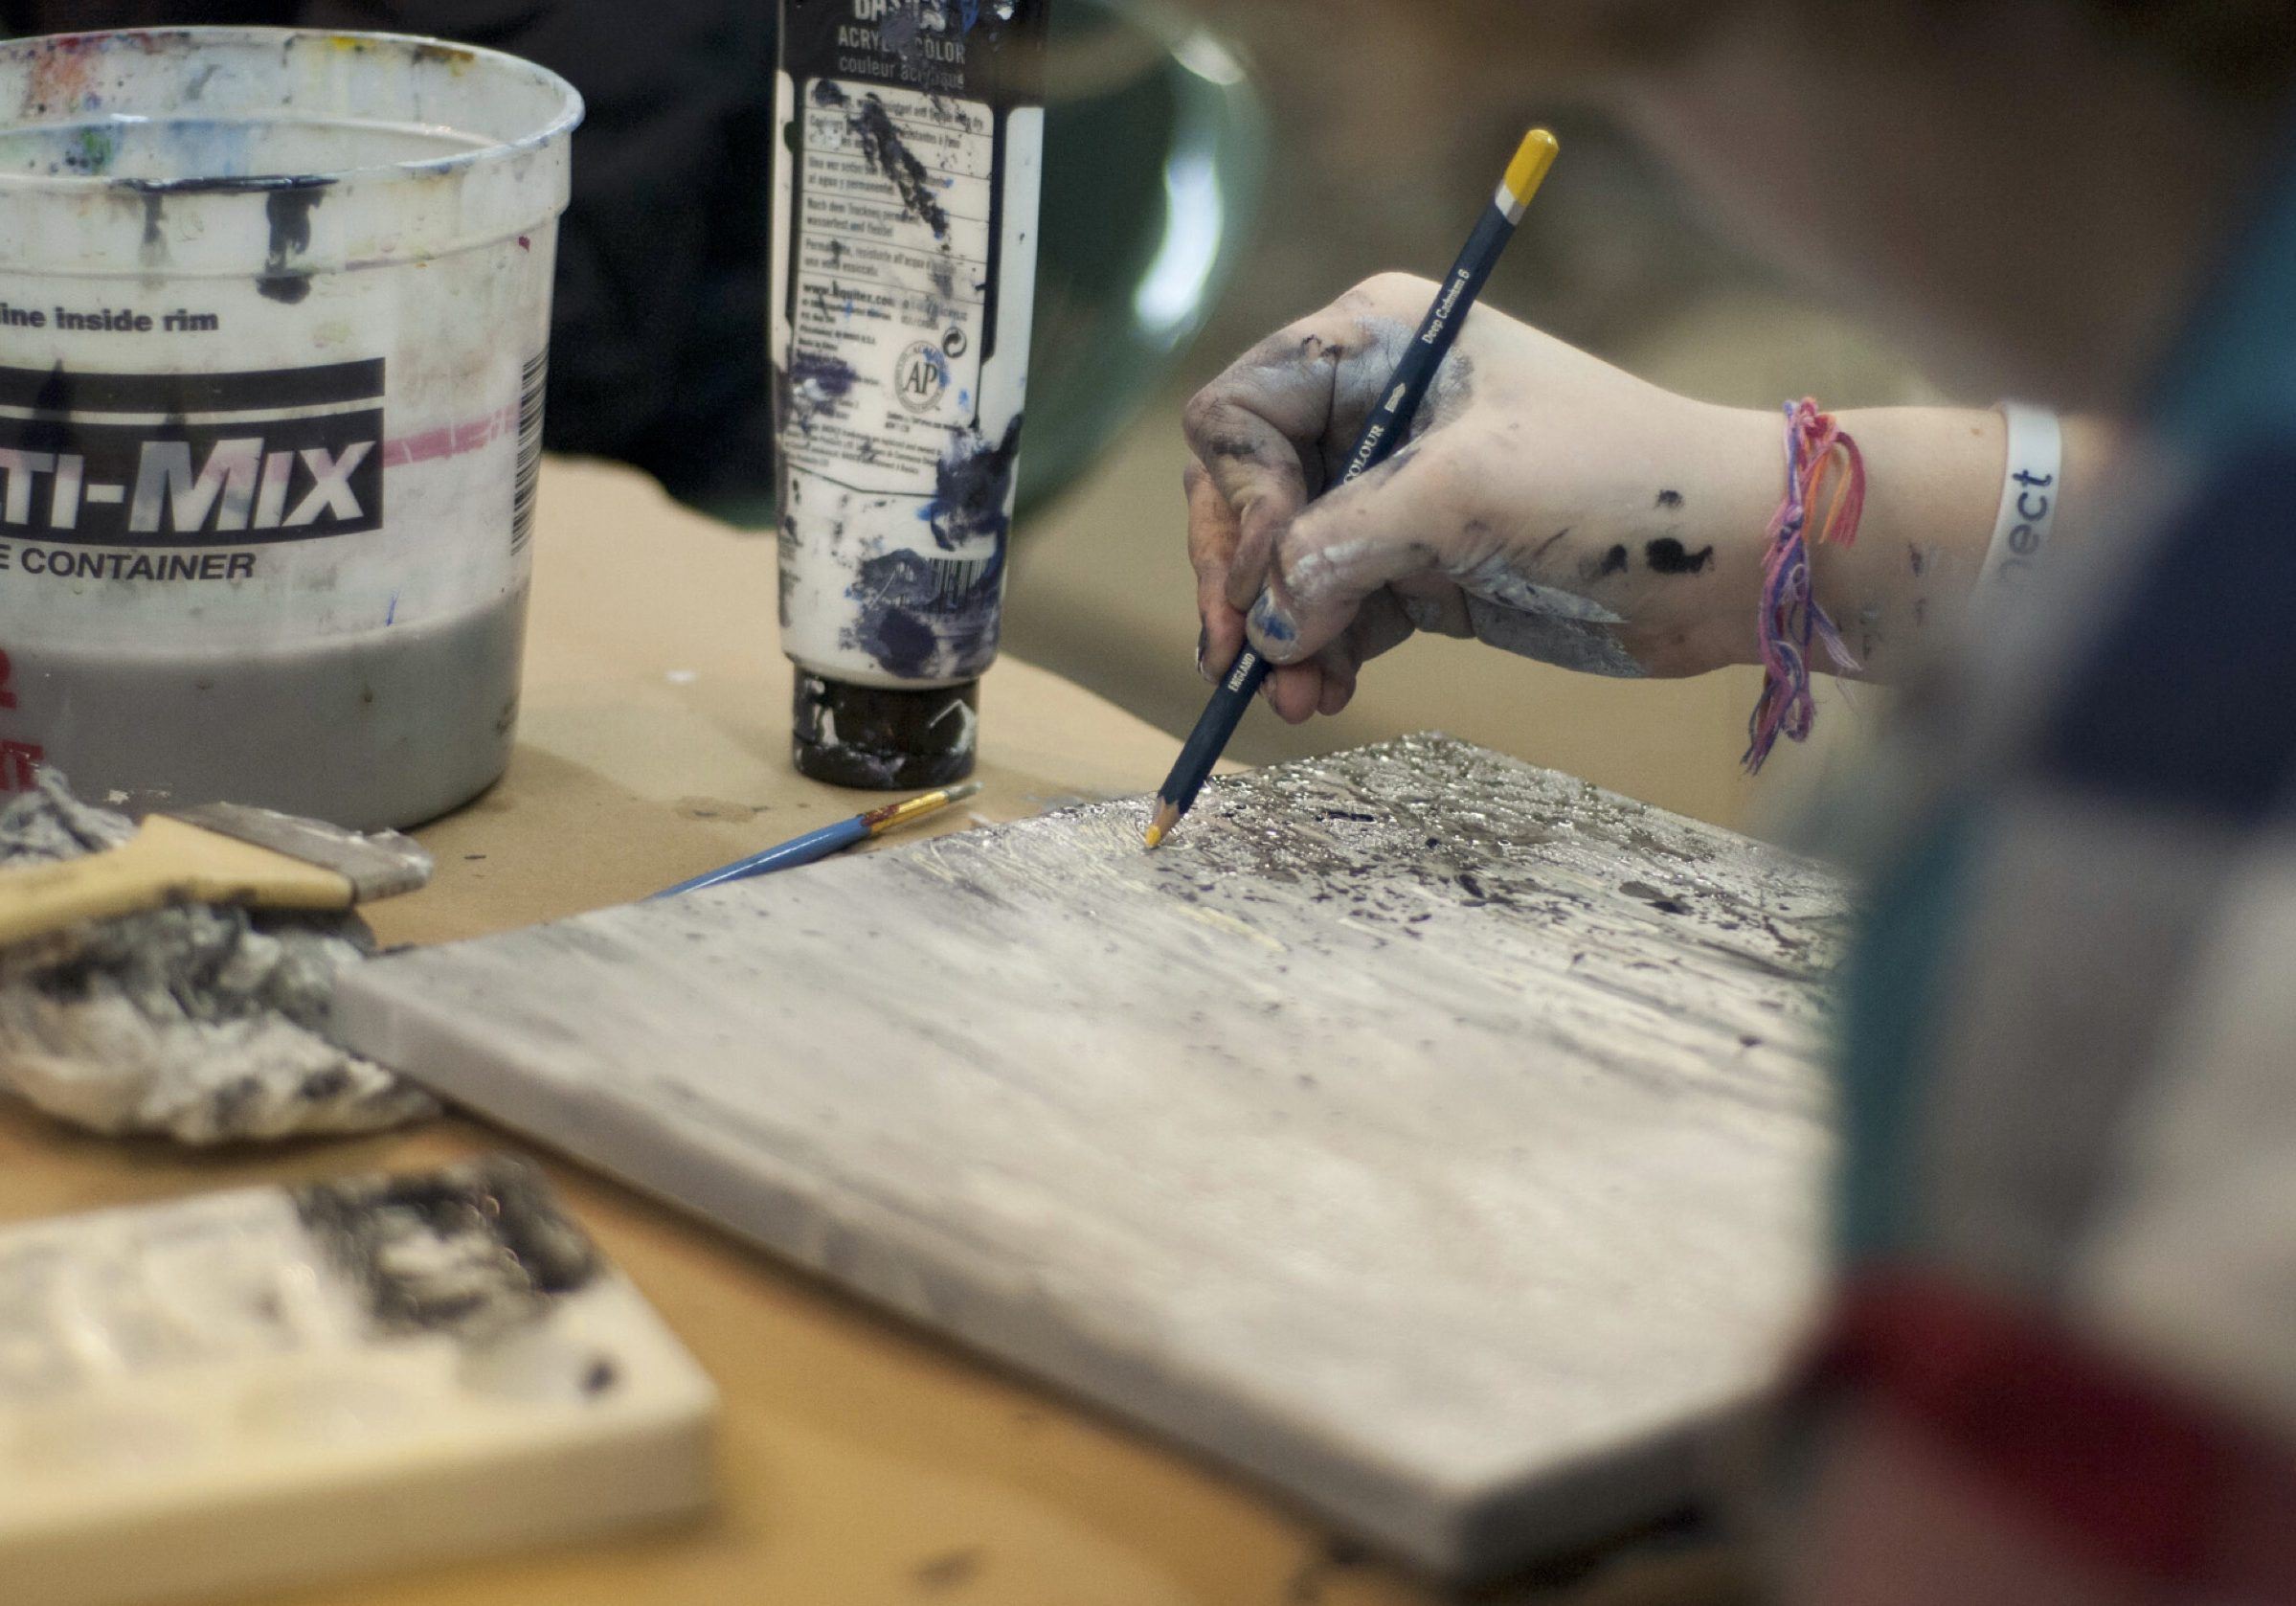 person working on a painting with art supplies around it, only their hand working is visable